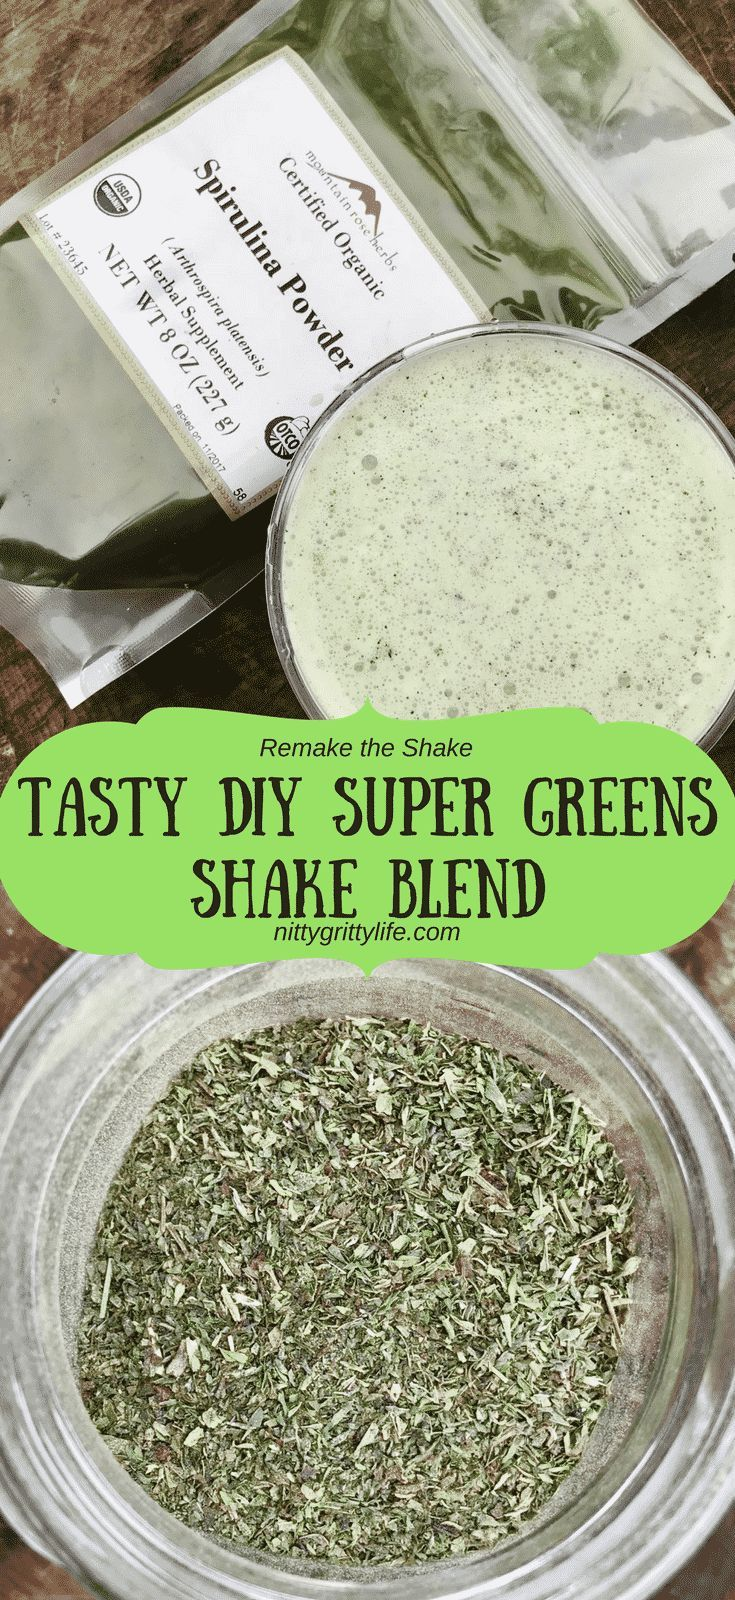 Big nutrition and flavor abound in this tasty DIY super green shake blend. via @nittygrittylife